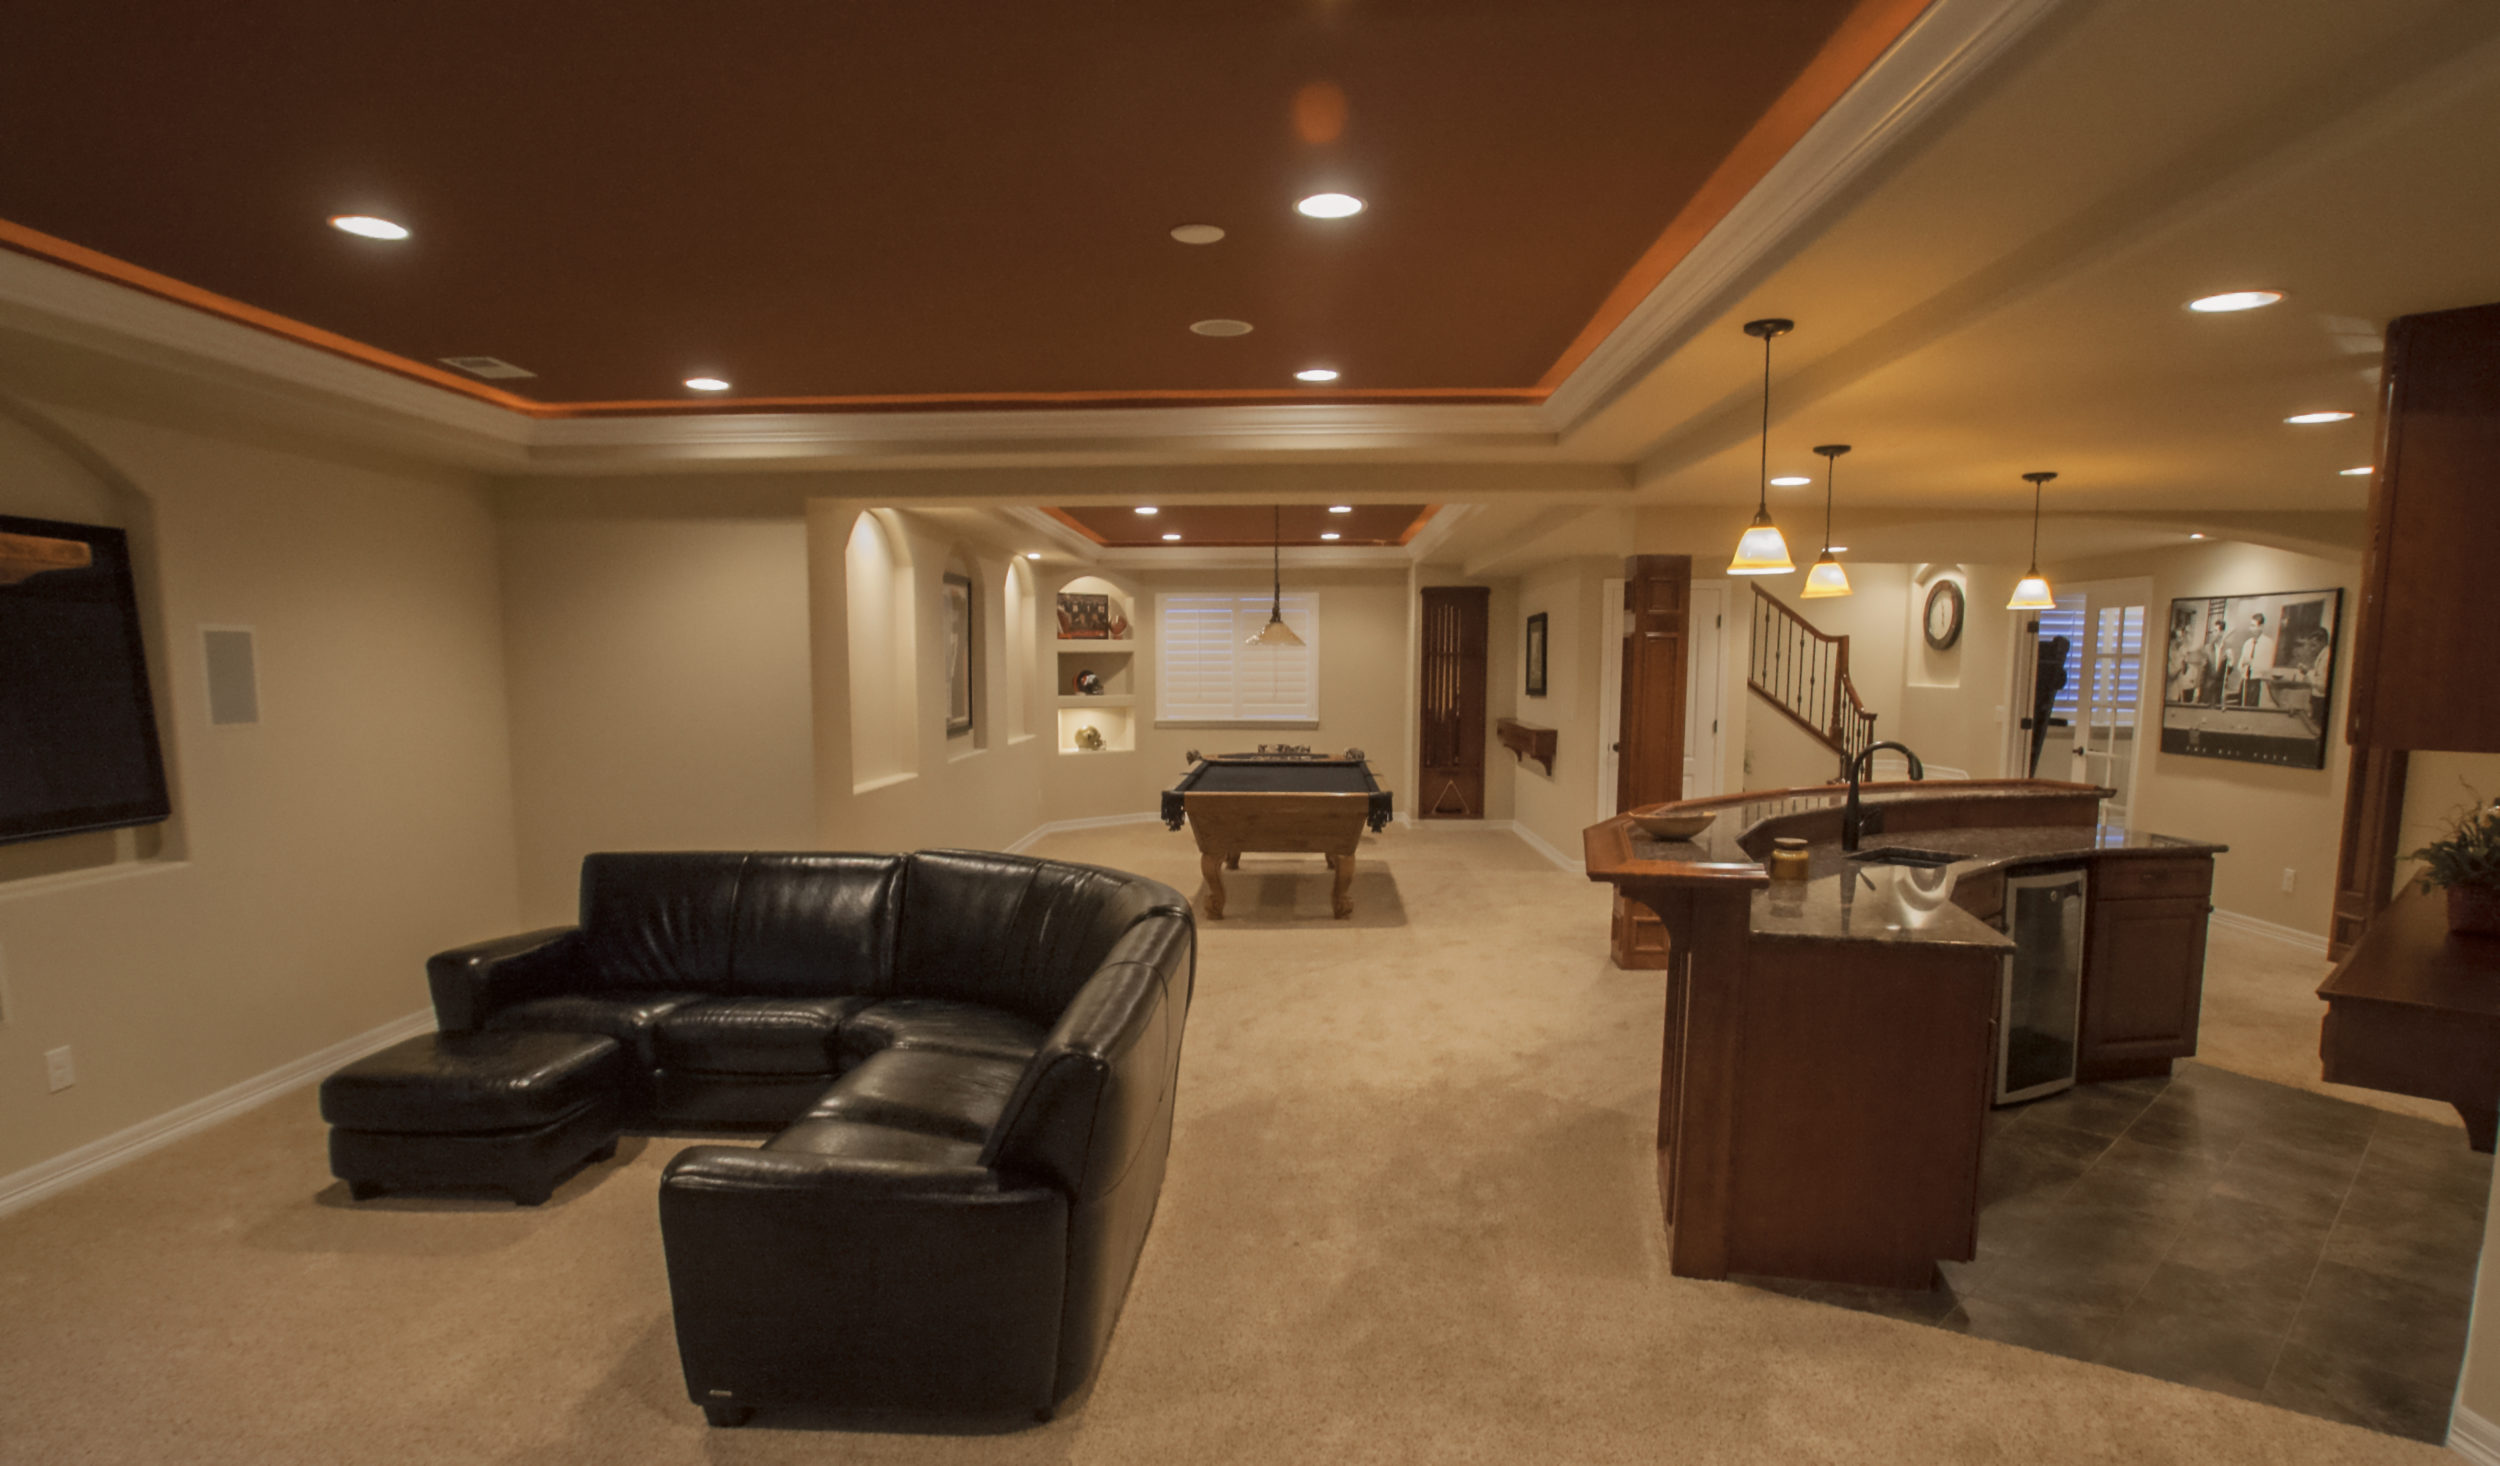 colorado basement finishing cost basement finishing denver co brothers 431